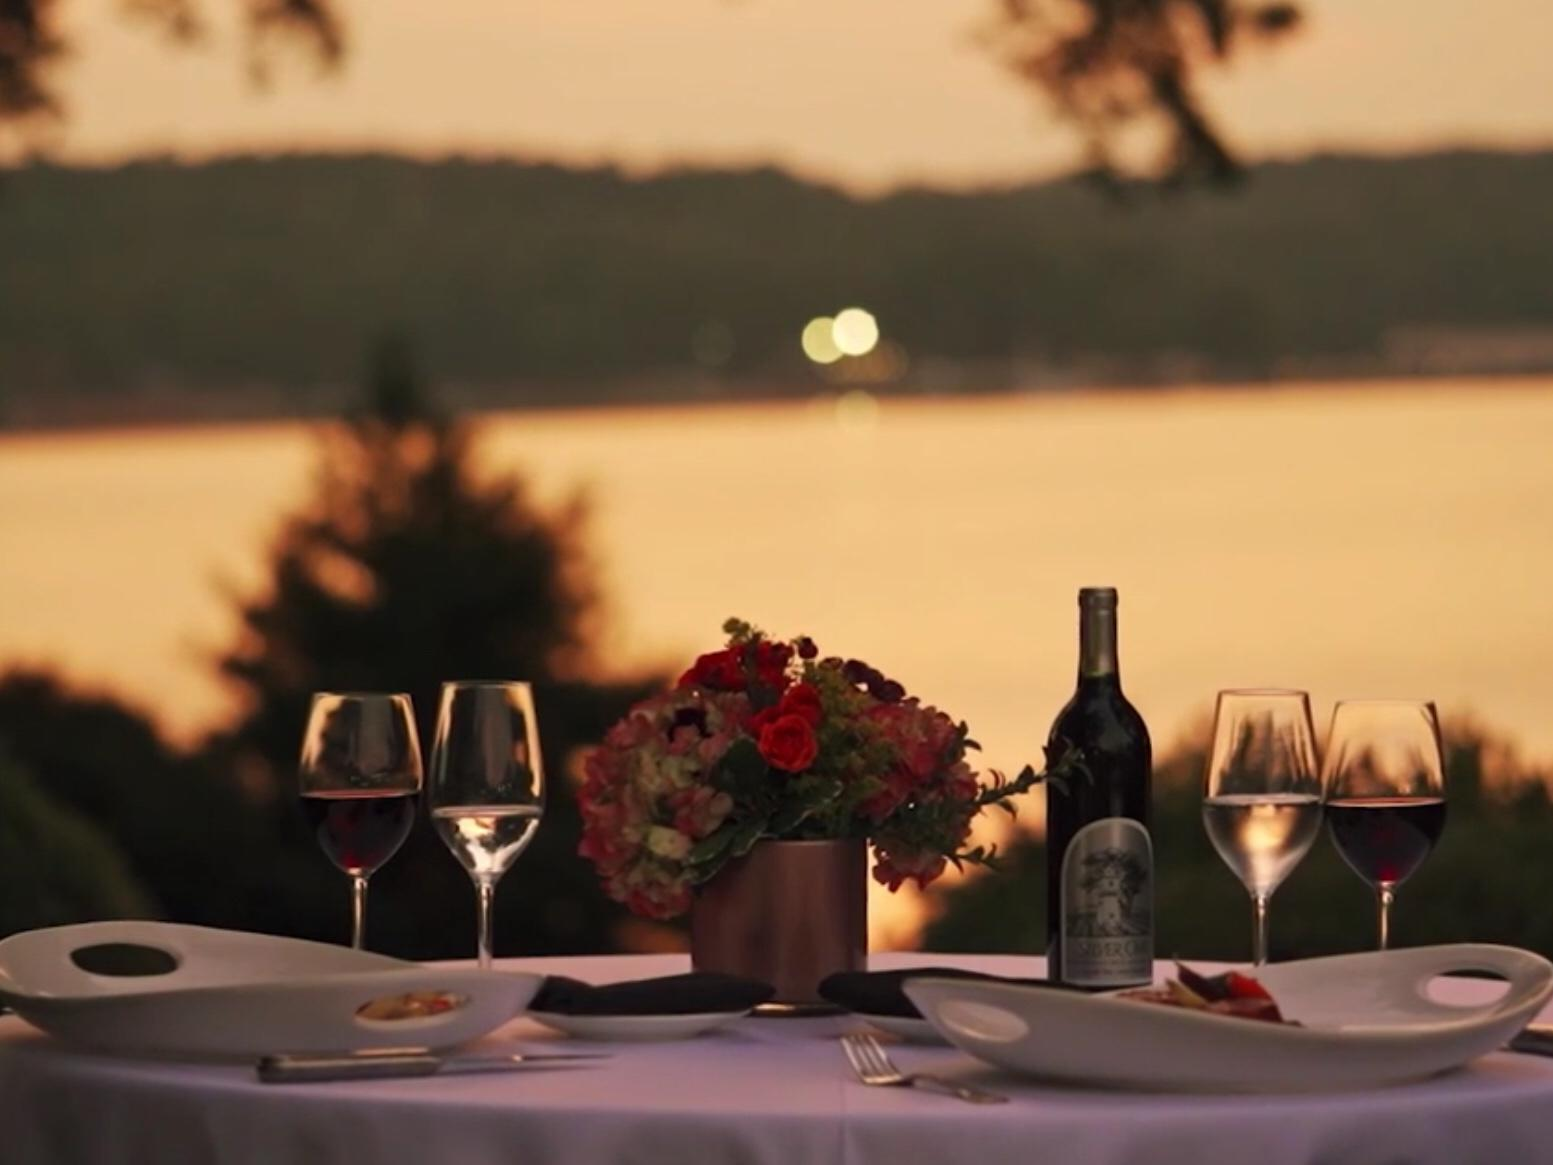 romantic dining table with wine and view of sunset over lake